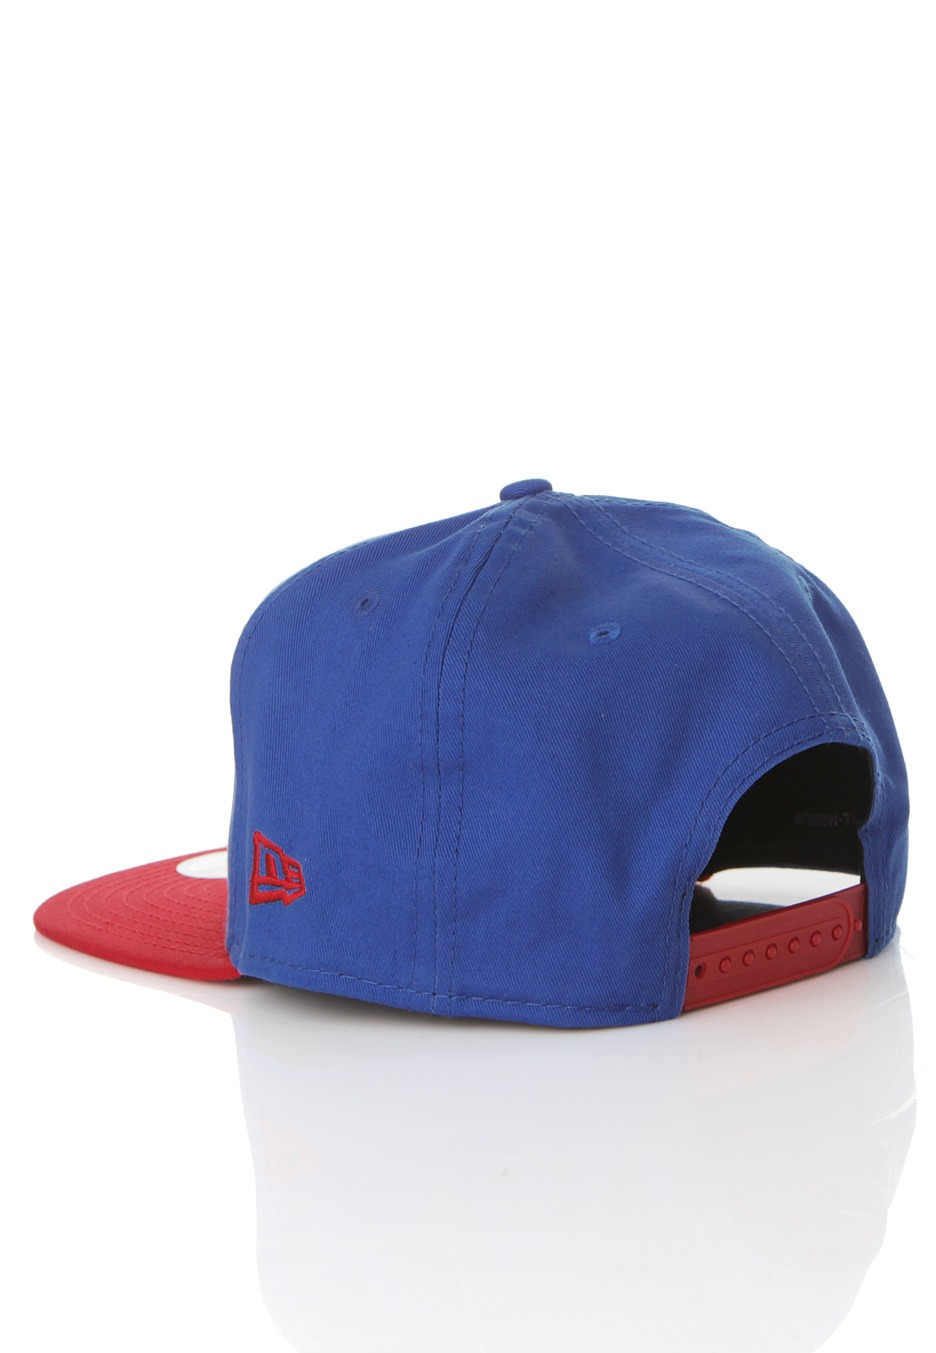 ... New Era - Hero Face Captain America Blue/Red Snapback - Cap ...